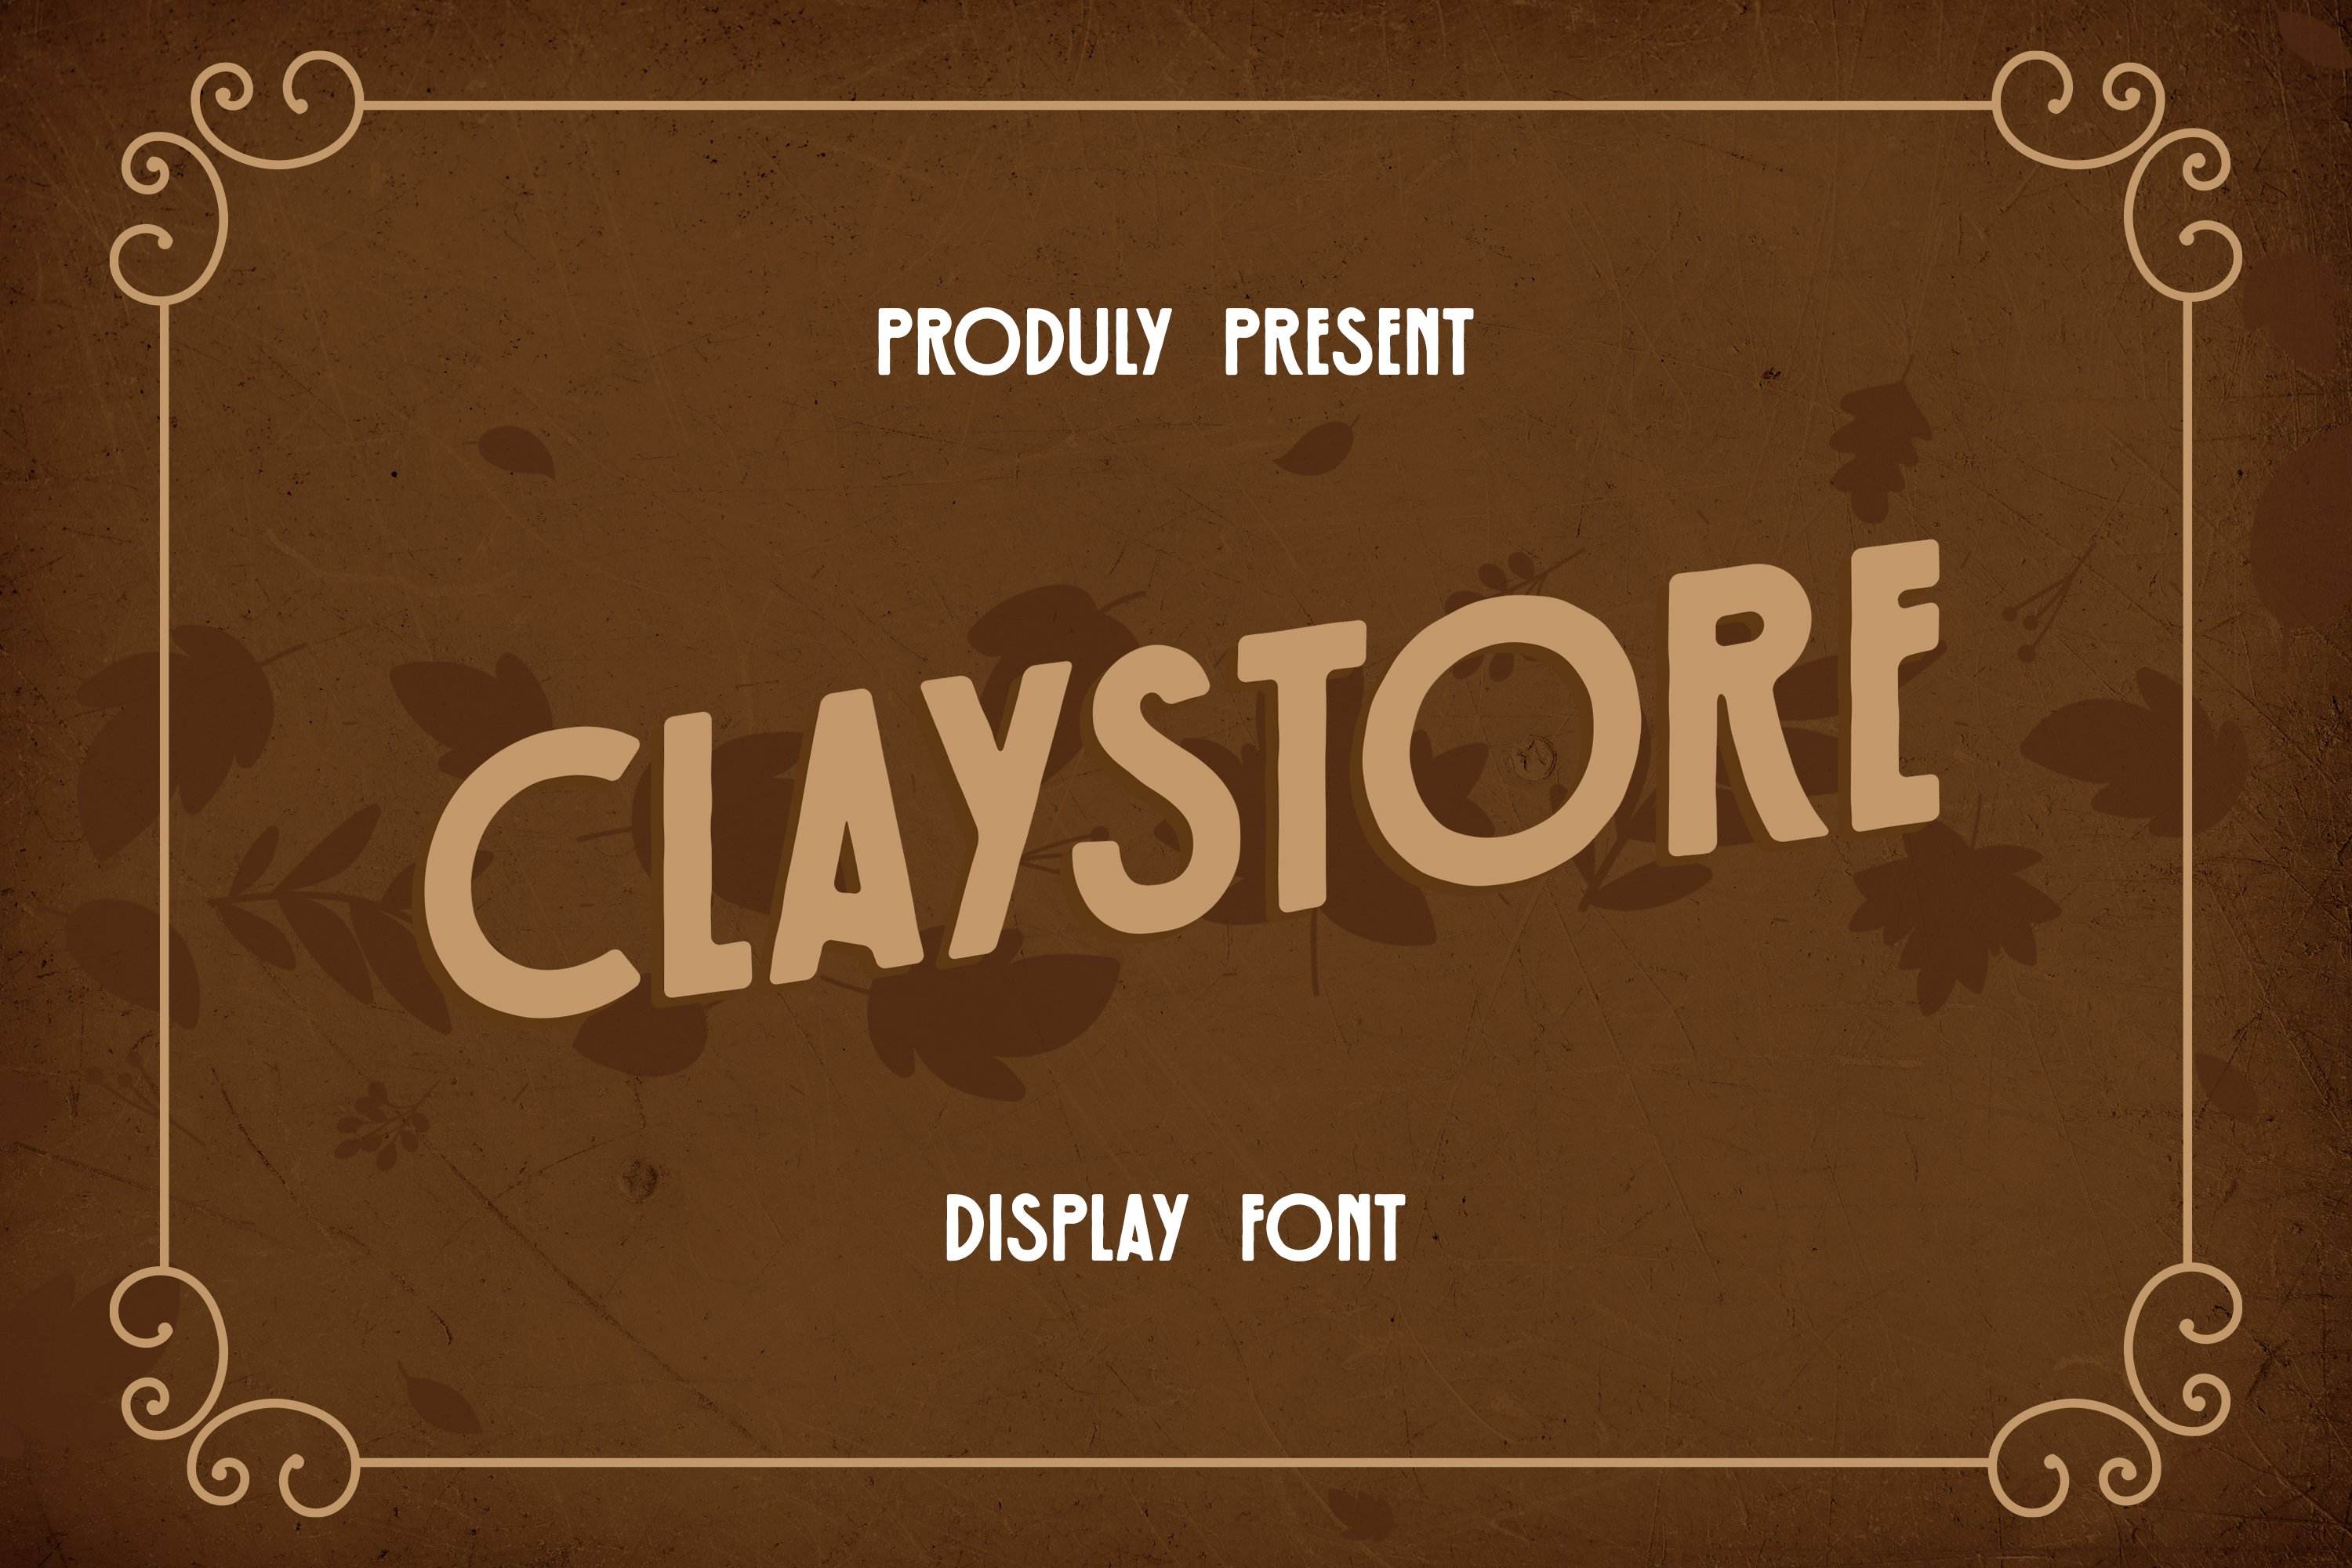 Claystore Font example image 1